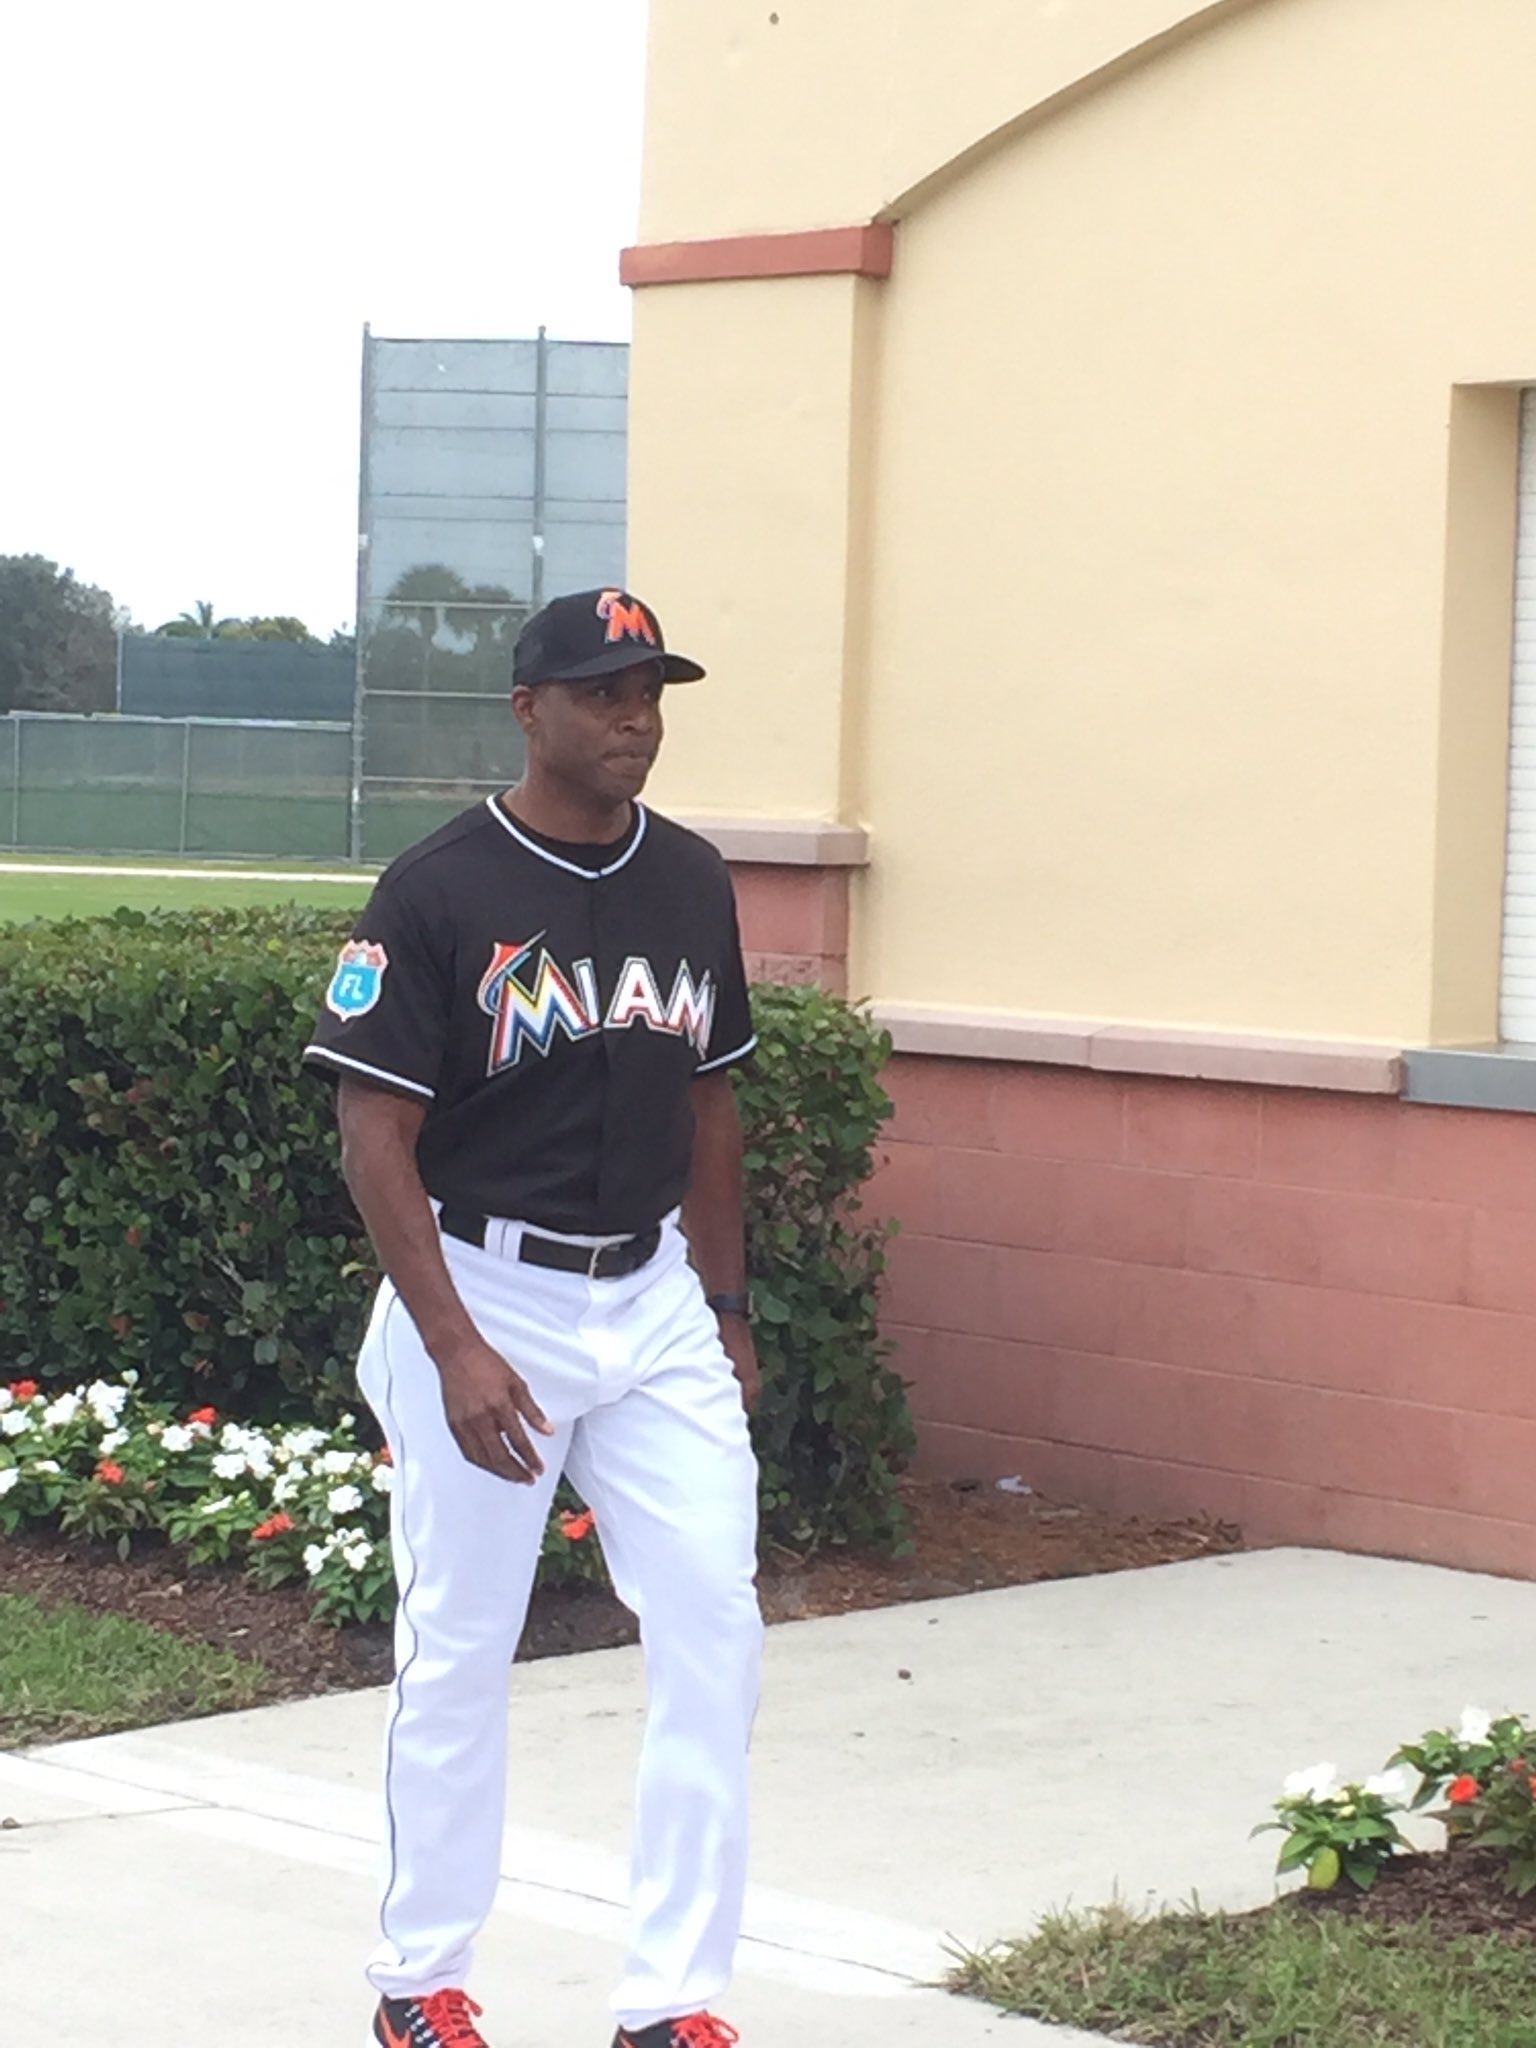 Barry Bonds in a @Marlins uniform. This is a weird reality. @CBSMiami @CBS4Sports https://t.co/udhinKJ460